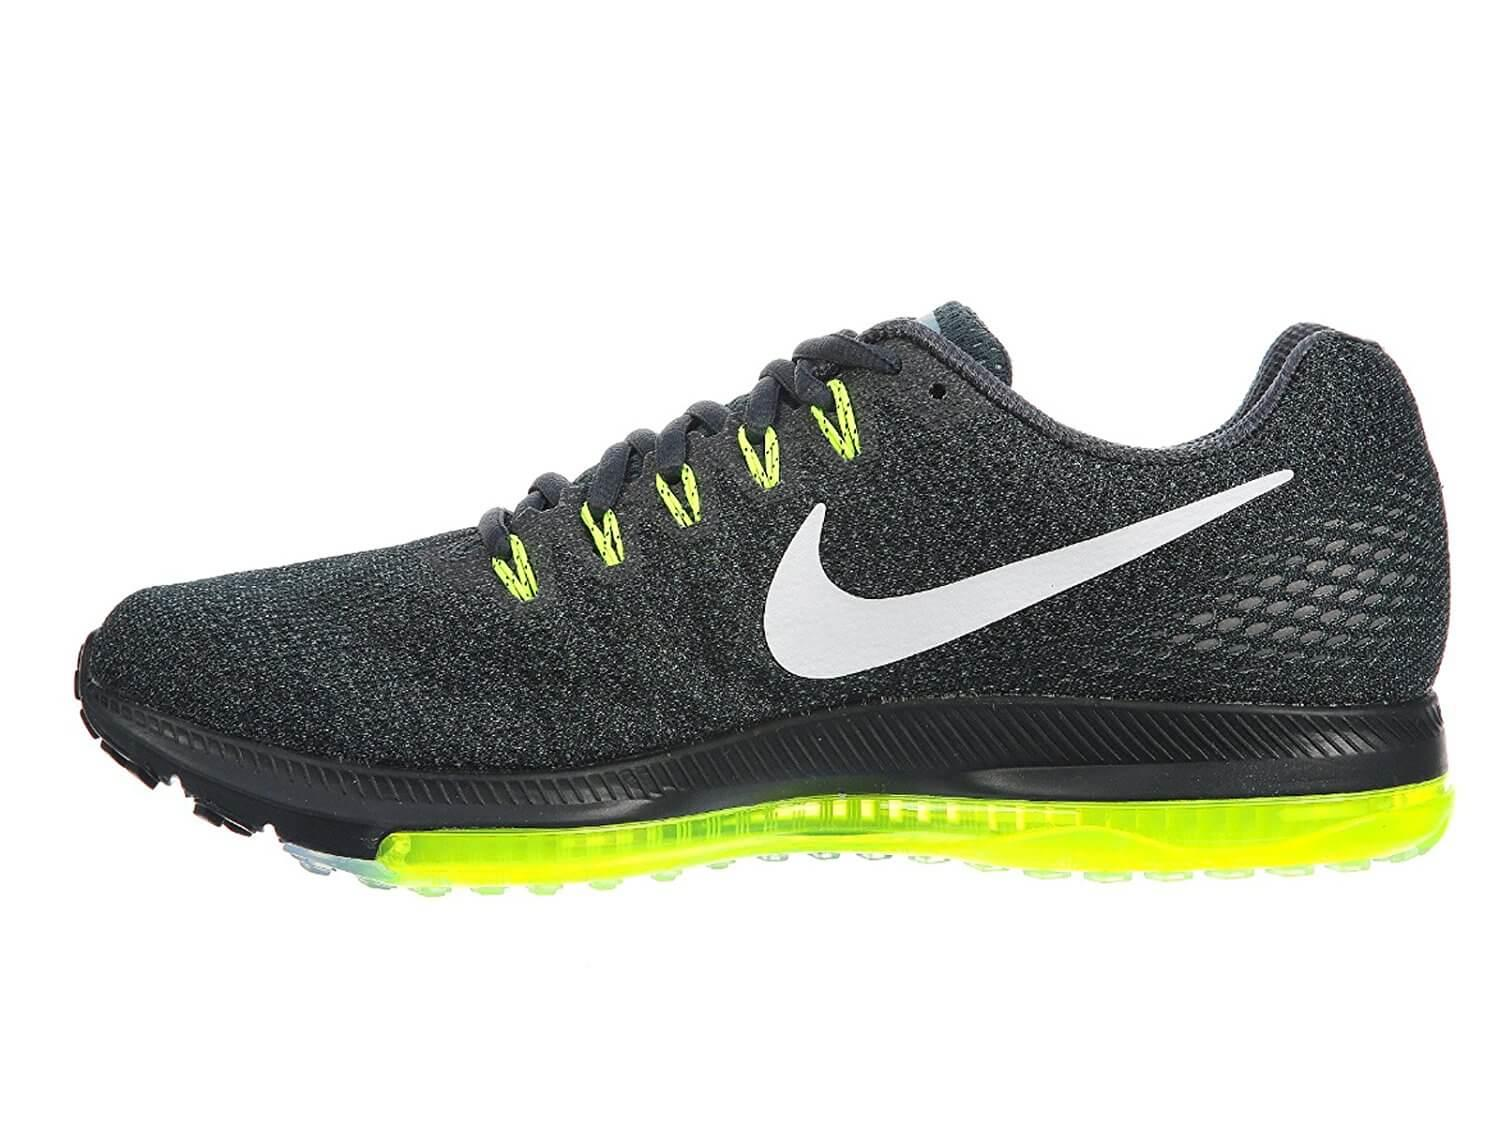 e068de4ac4e Nike Zoom All Out Low Review - Buy or Not in May 2019